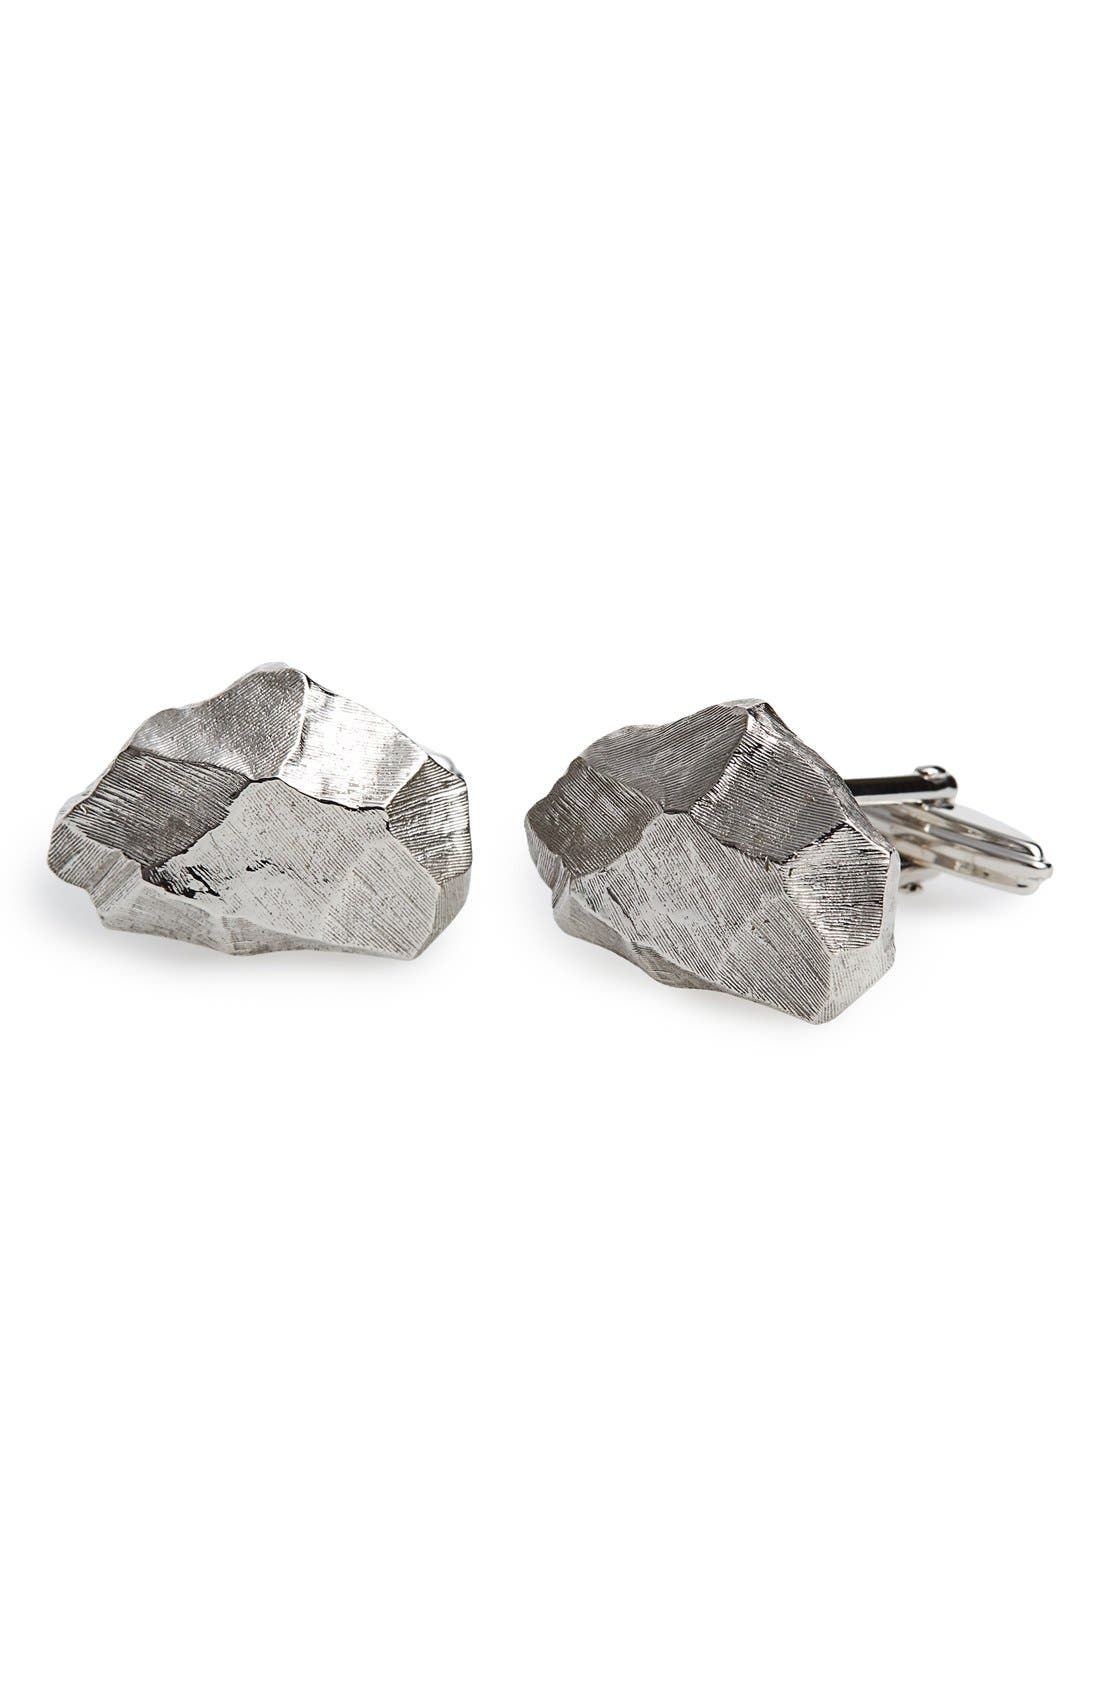 Nugget Cuff Links,                             Main thumbnail 1, color,                             040